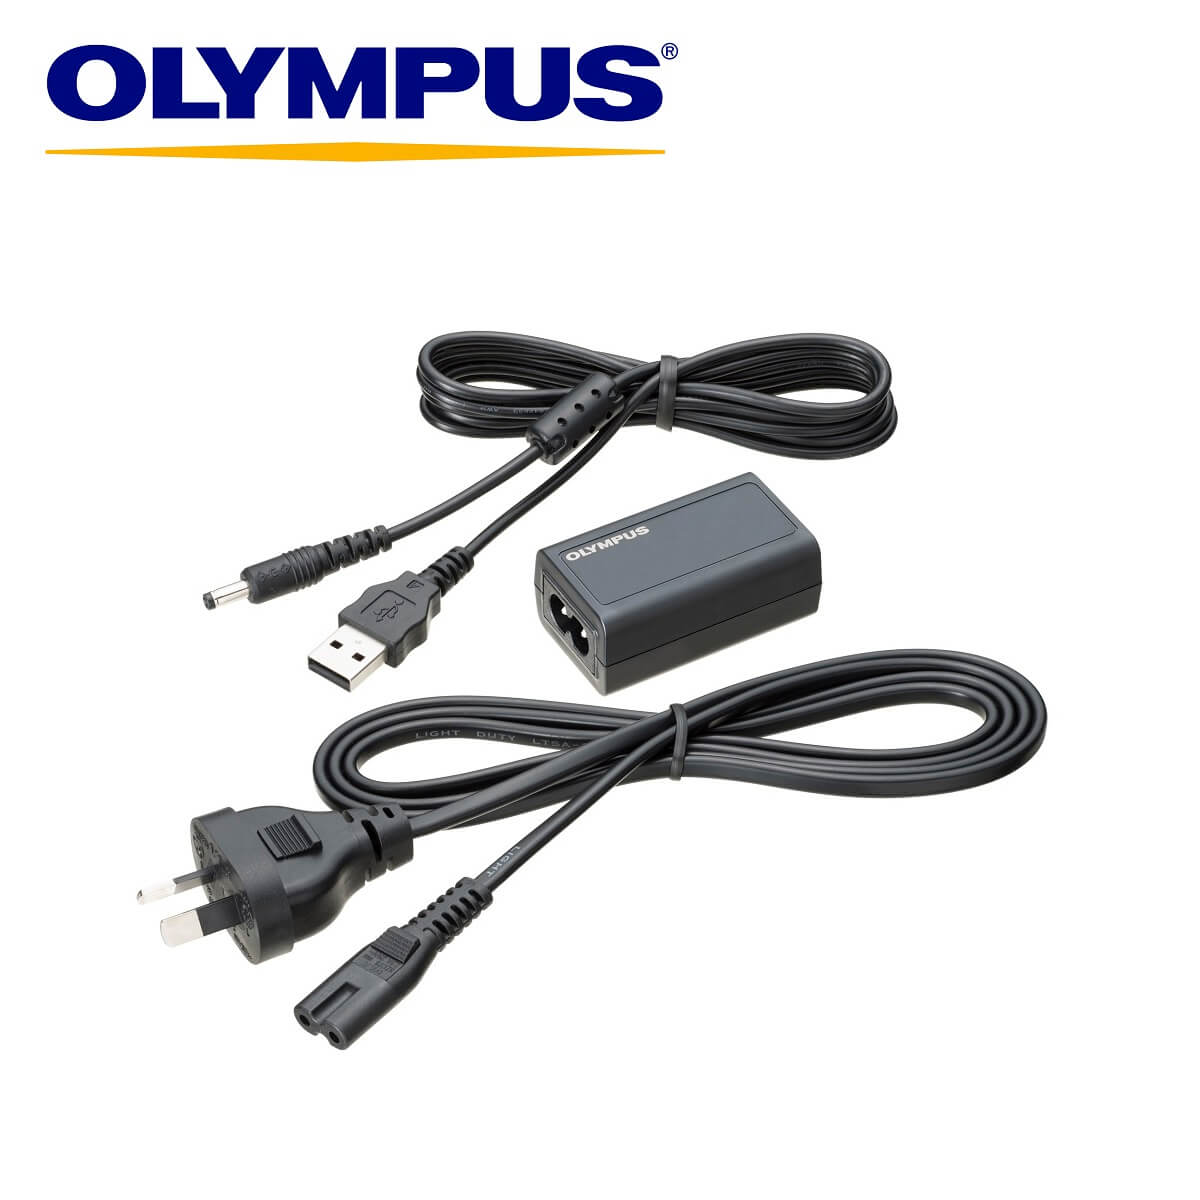 Olympus F-5AC for Audio adapter